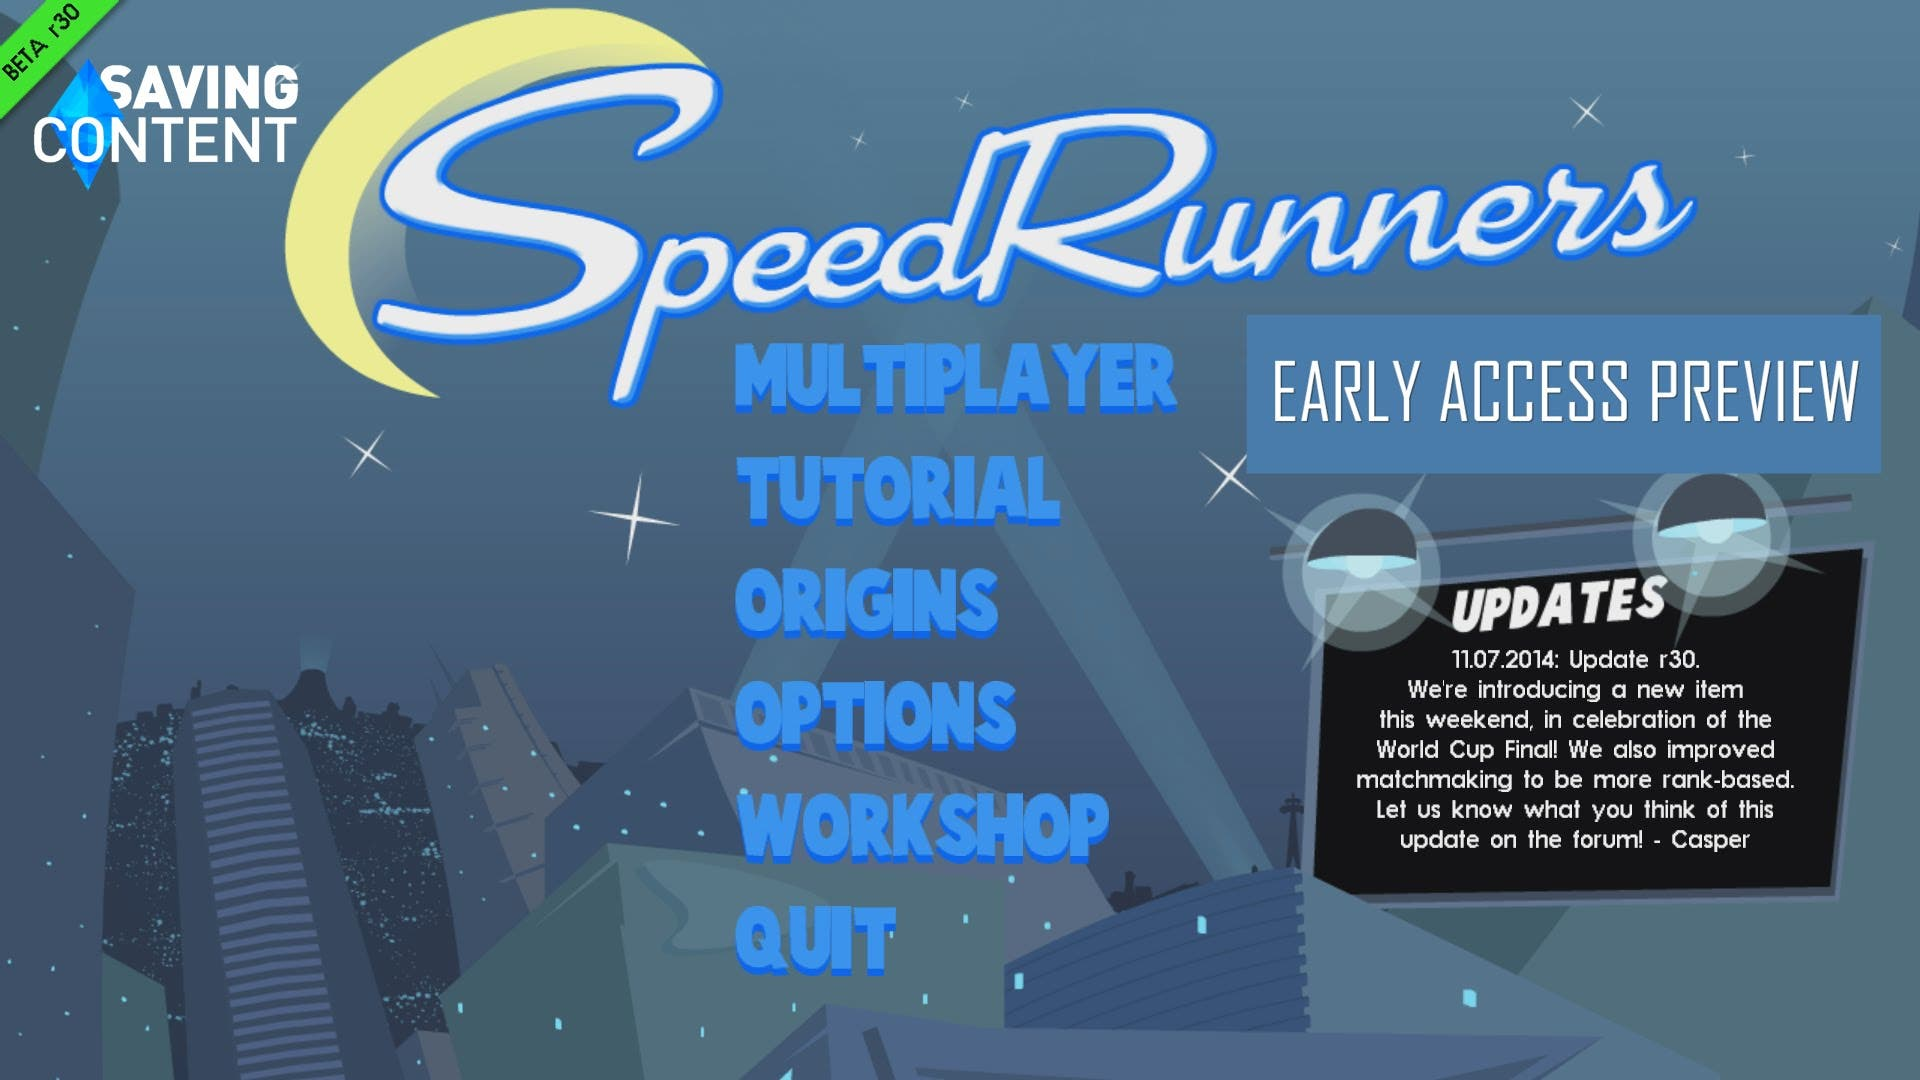 speedrunners early access previe